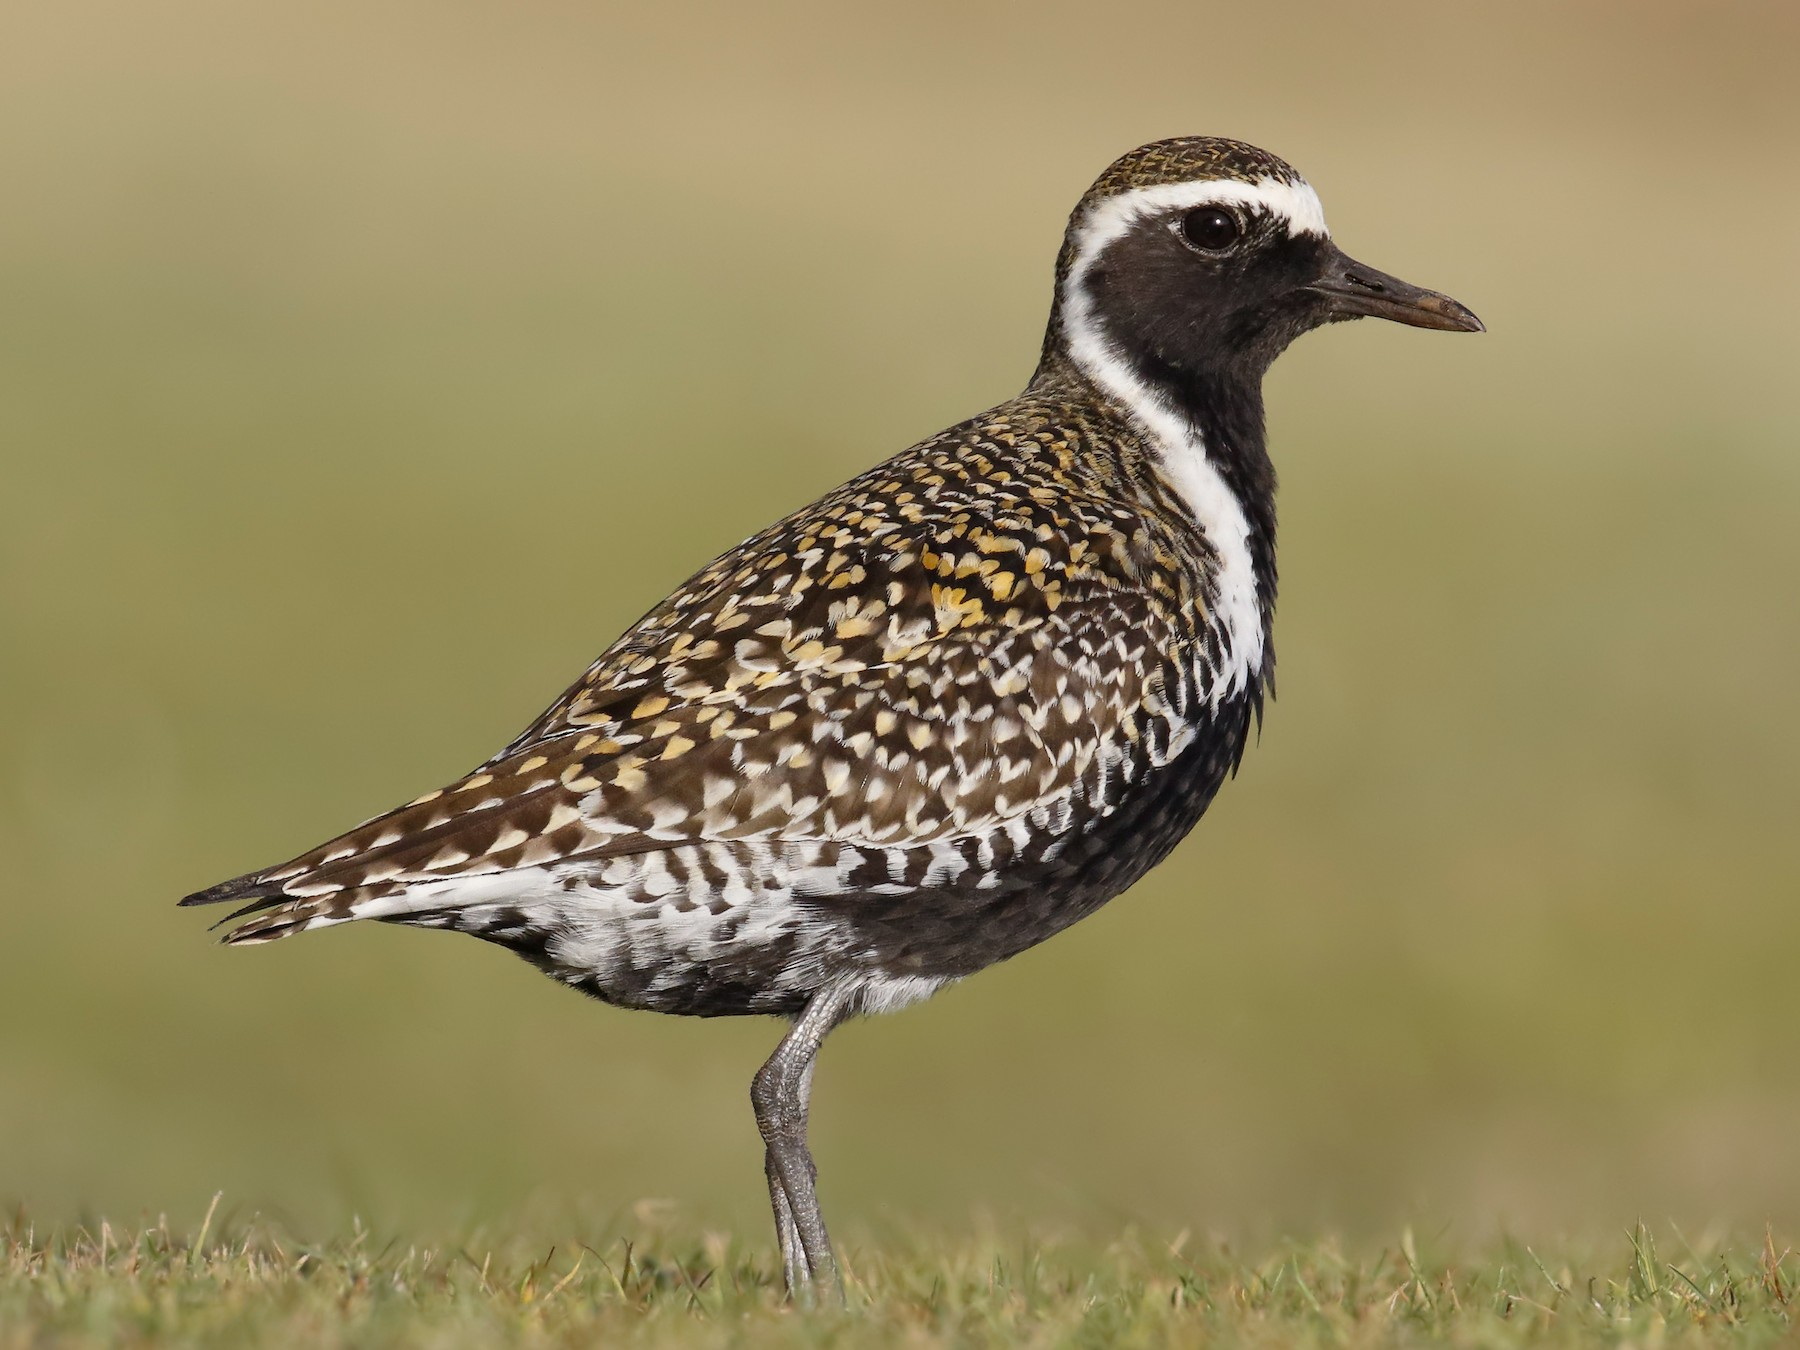 Pacific Golden-Plover - Sharif Uddin